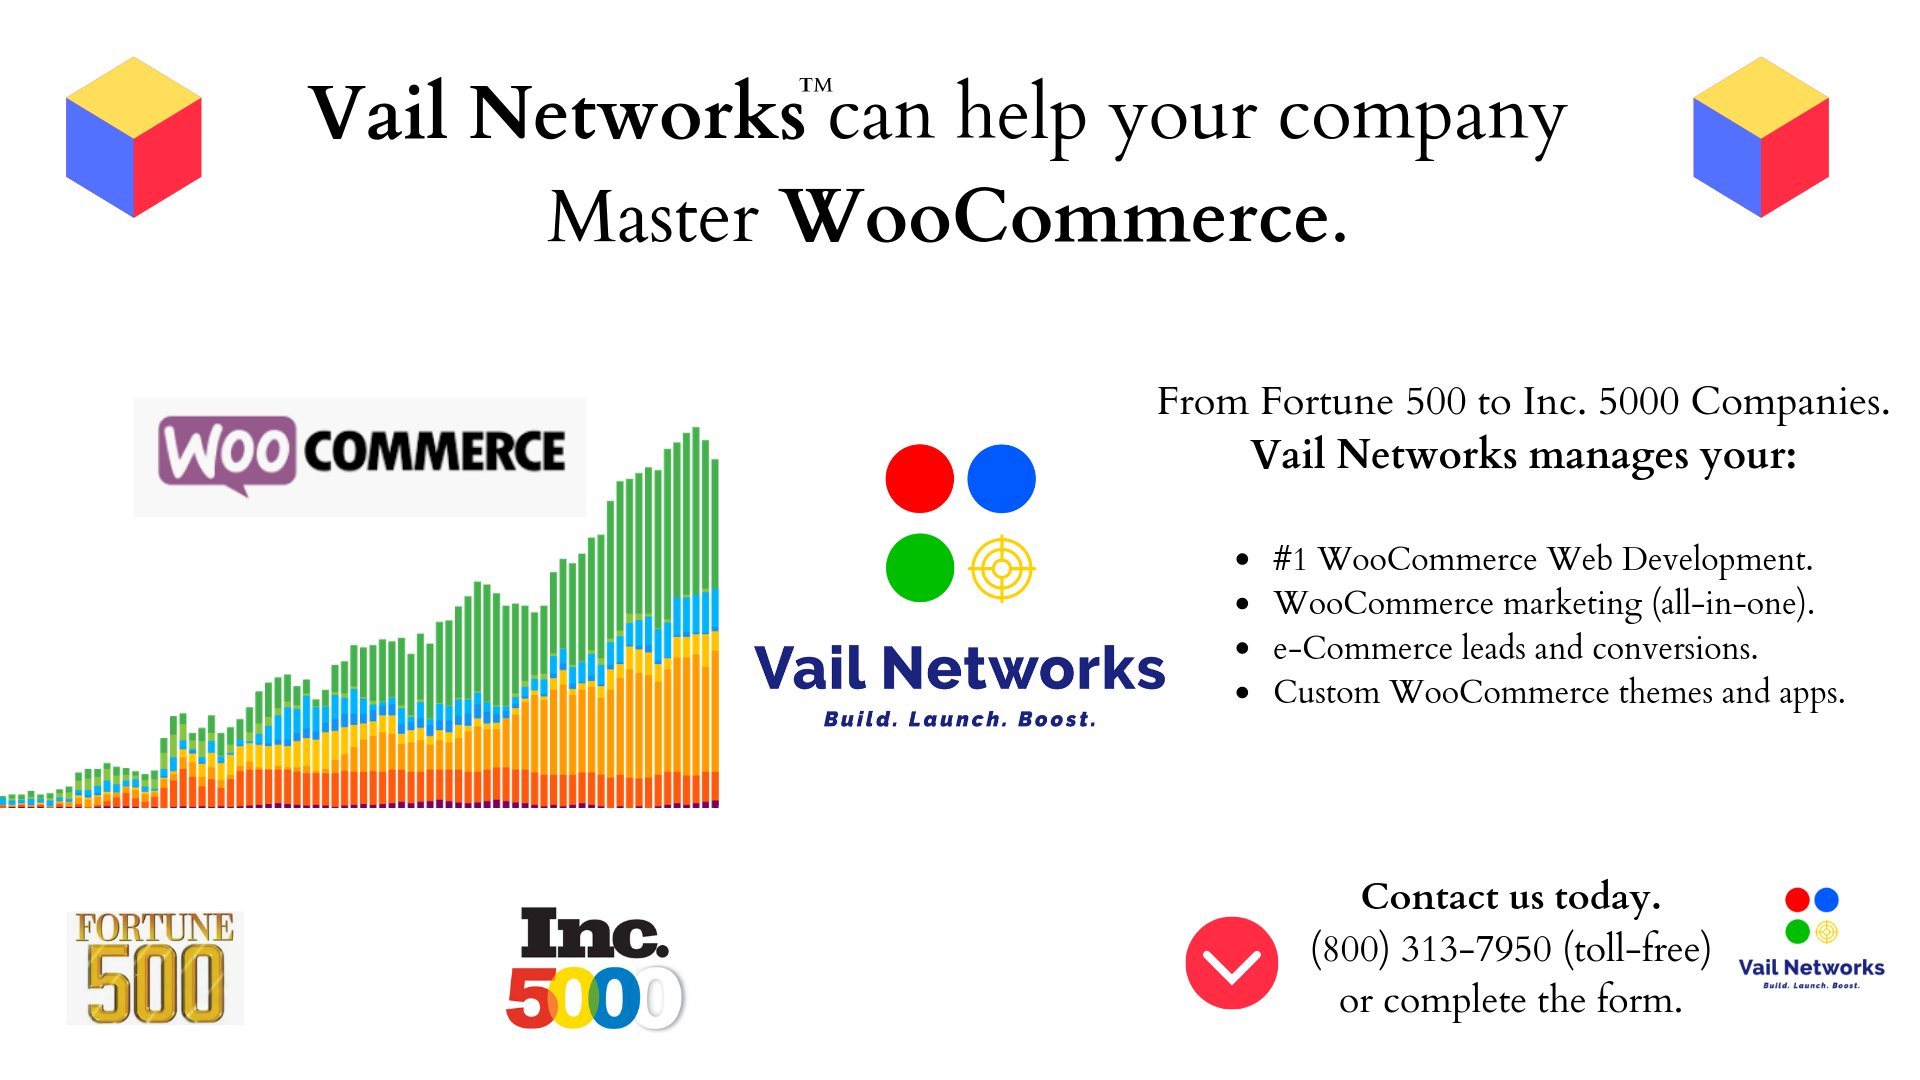 company to help with woocommerce custom web development, marketing and software building: VailNetworks.com